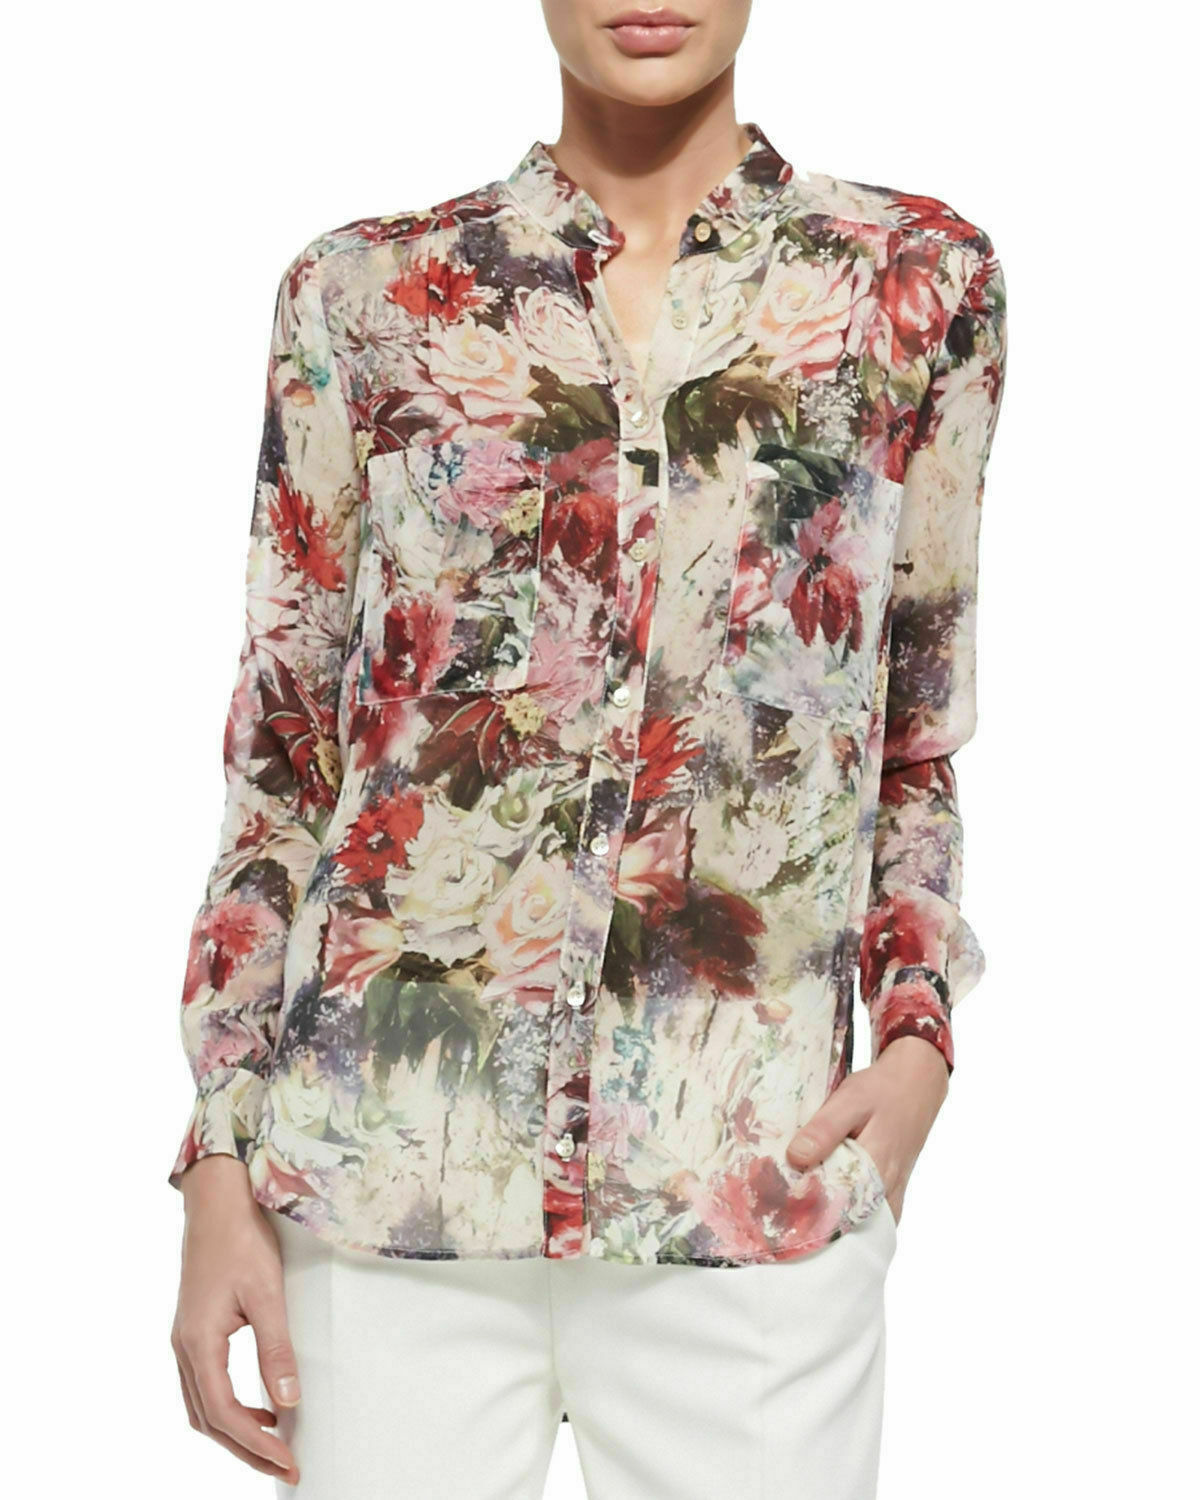 HAUTE HIPPIE damen CELEBRITY WEAR 100% SILK BLOUSE SHIRT TOP  NWT XS S M